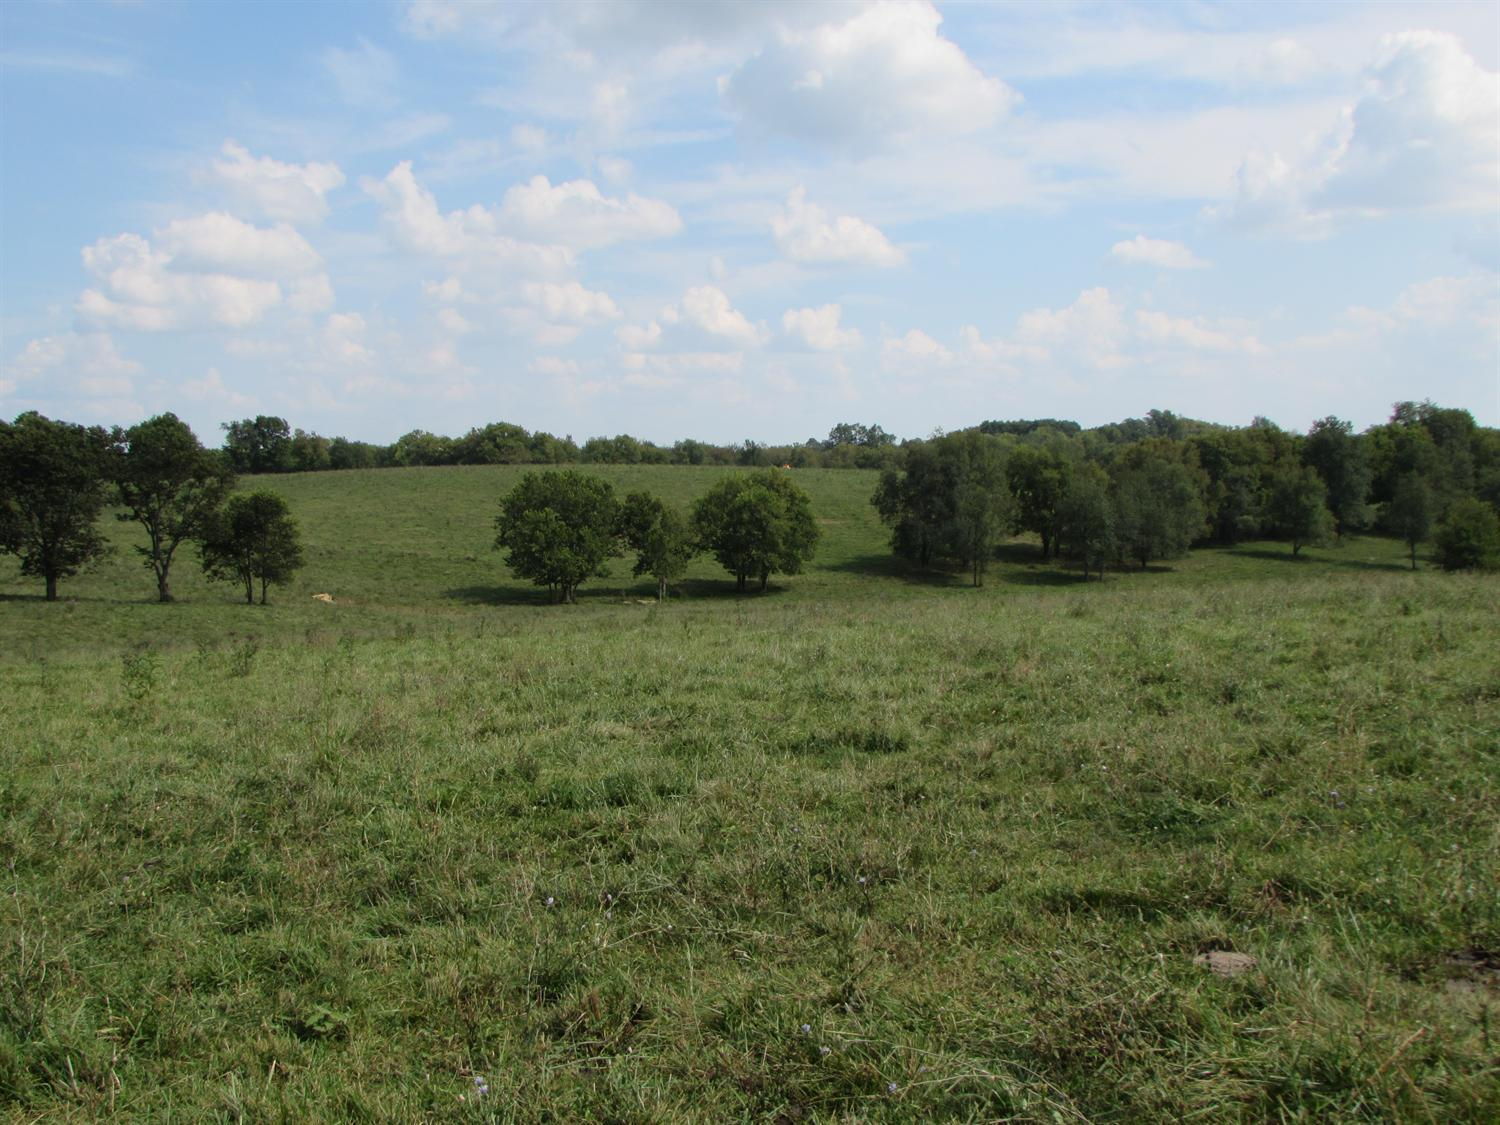 Beautiful%20403%20ac.%20cattle%20farm%20with%20rolling%20patures%20and%20scattered%20wooded%20areas.%20Turn%20key%20stocker%20operation%20with%20excellent%20forages%20and%20opportunities%20for%20expansion.%20Improvements%20include%20timber%20frame%20stock%20barn%20with%20loft,%20cattle%20pens,%20tobacco%20barn,%20bulk%20feed%20bin,%202%20grain%20bins,%20and%20livestock%20water%20tanks%20throughout.%20Two%20entrances%20on%20Gay%20Rd.%20and%20two%20on%20Oldson%20Rd.%20Owner/agent